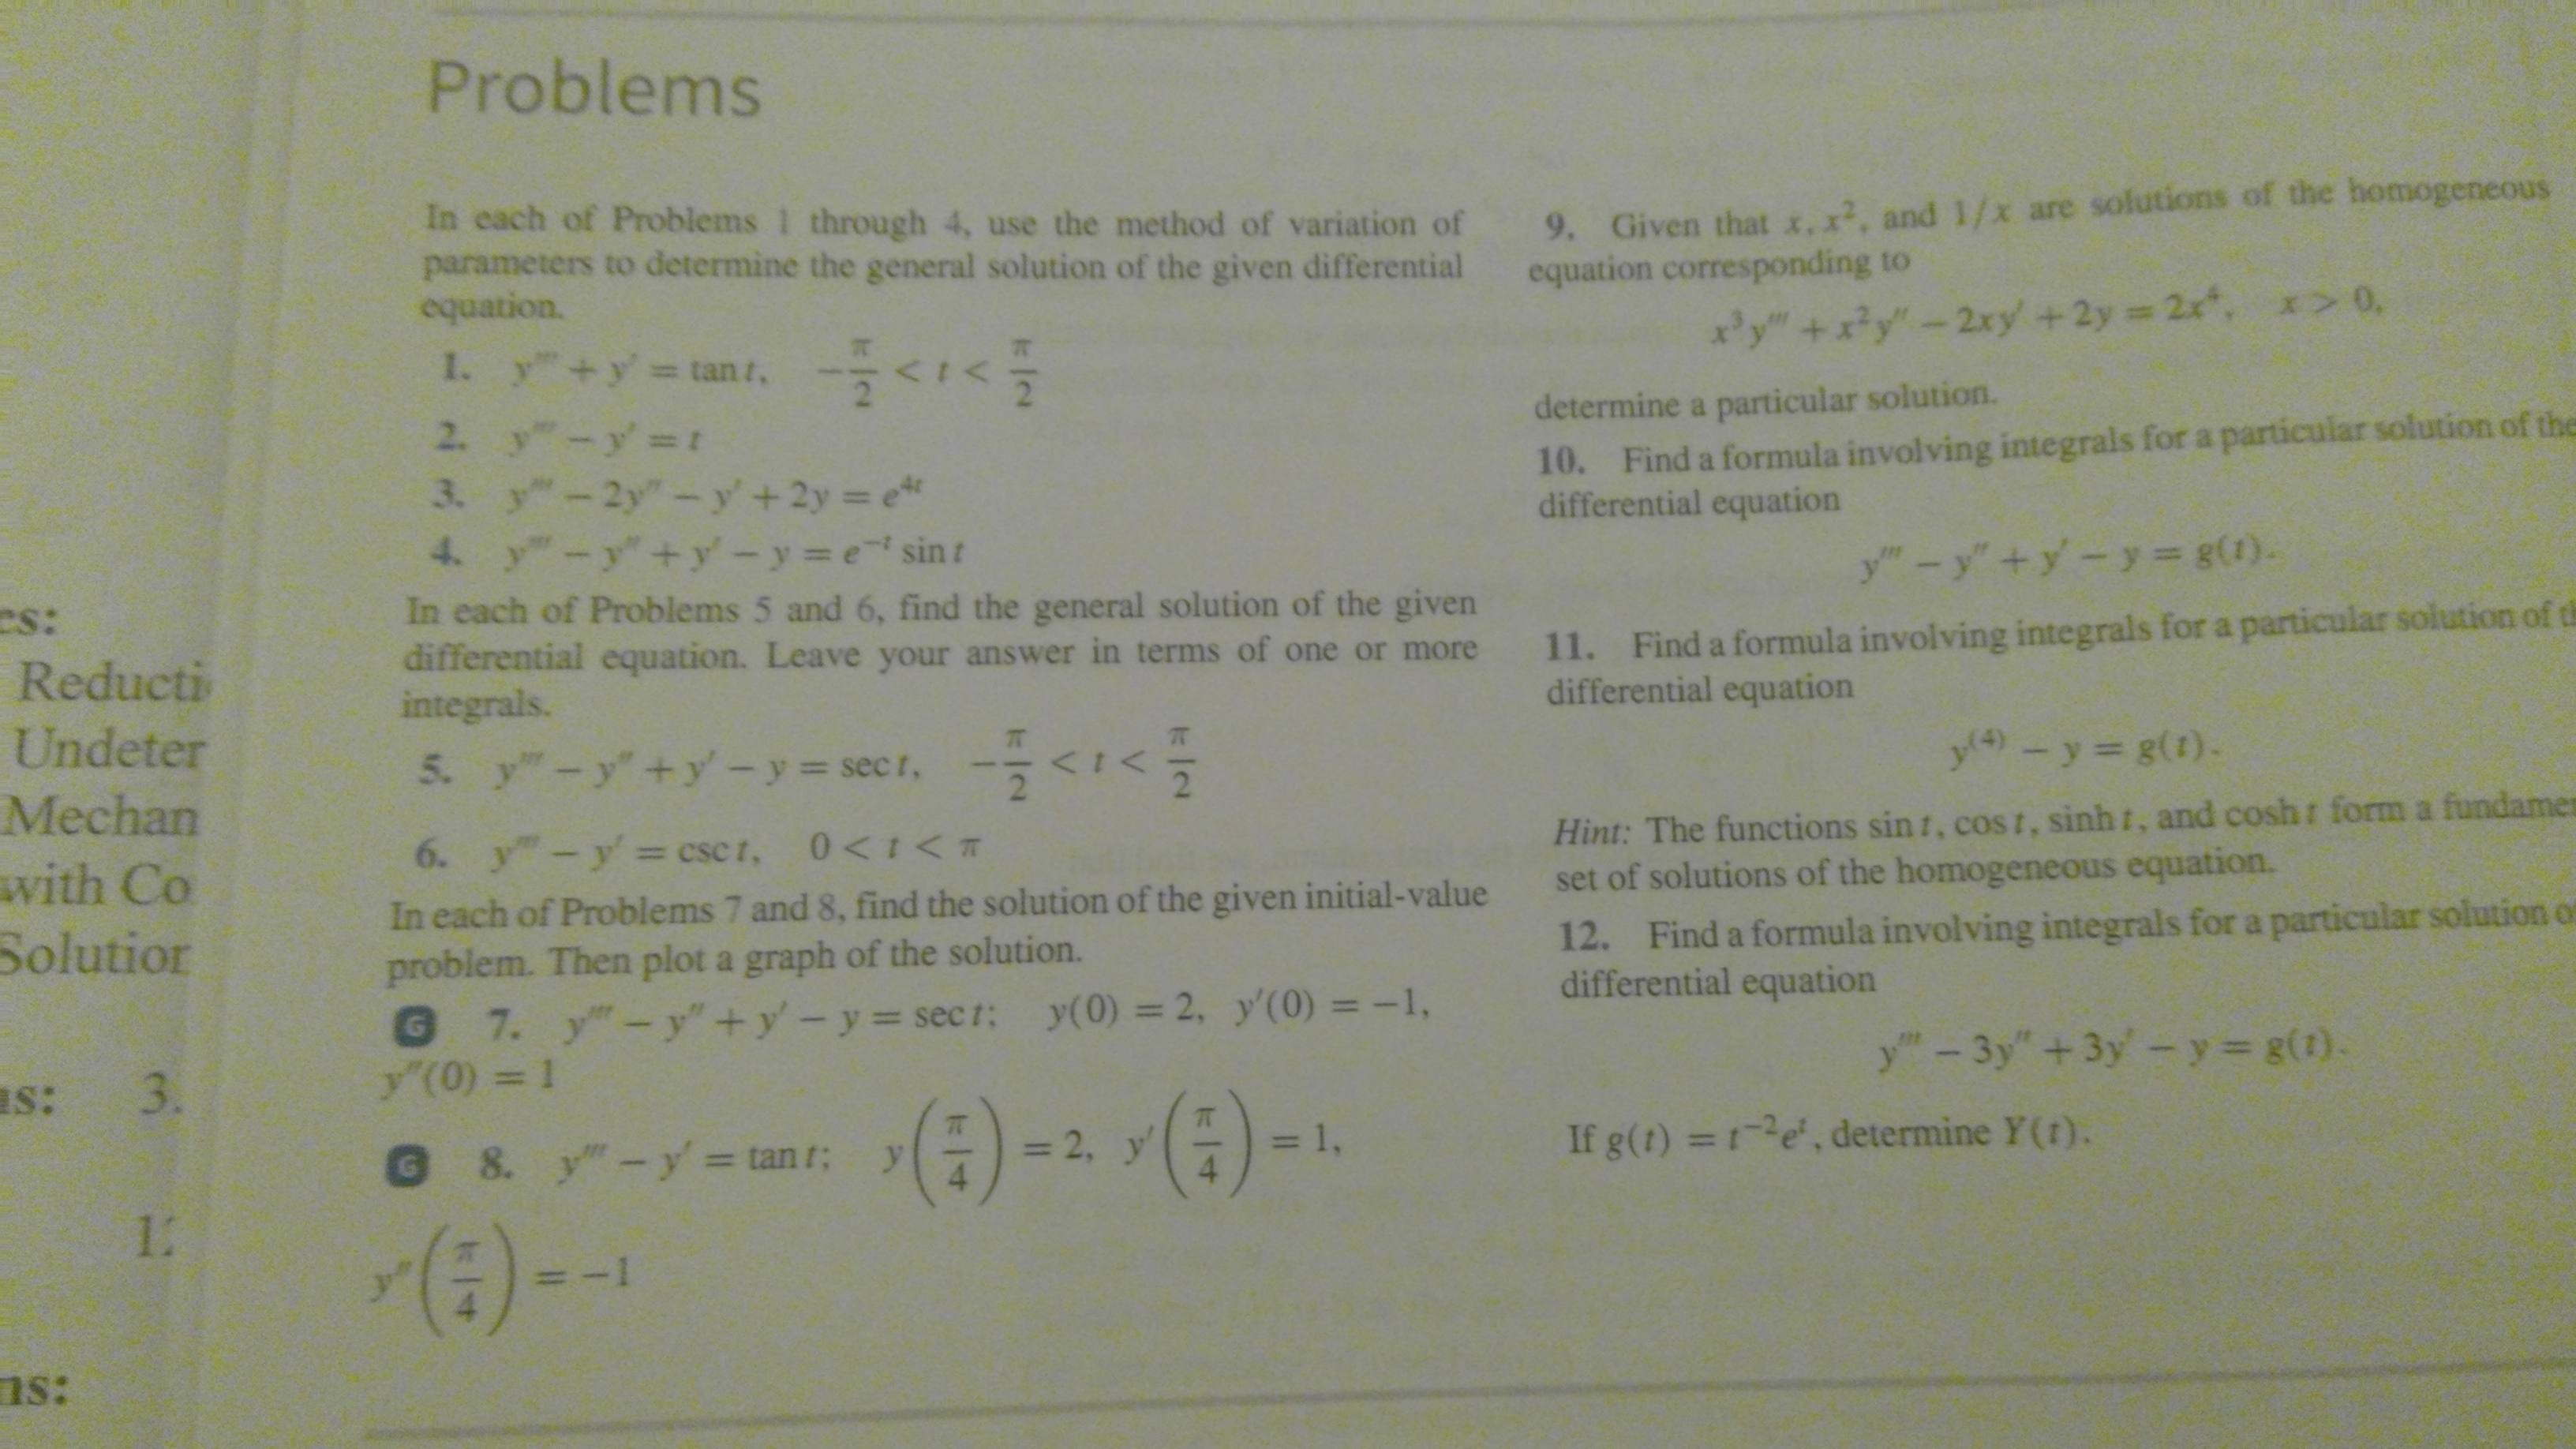 """Problems 9. Given that x, x2, and 1/x are solutions of the homogeneous equation corresponding to In cach of Problems 1 through 4, use the method of variation of parameters to determine the general solution of the given differential equation. xy""""+x?y""""-2xy +2y 2x, x> 0, 1. y +y tan t, determine a particular solution. 10. Find a formula involving integrals for a particular solution of the differential equation 2. y""""-y' t 3. y-2y""""-y'+2y e 4. y-y""""+y'-y e sint y""""-y""""+y-y= g(1). In each of Problems 5 and 6, find the general solution of the given differential equation. Leave your answer in terms of one or more integrals. 11. Find a formula involving integrals for a particular solution of th differential equation es: Reducti Undeter y4) - y= g(1). 5. y-y+y-y-secr, -<1< 2 Hint: The functions sin t, cost, sinh t, and cosh set of solutions of the homogeneous equation. Mechan form a fundamen 6. y""""-y= csc t, 0<t<T with Co In each of Problems 7 and 8, find the solution of the given initial-value problem. Then plot a graph of the solution. @ 7. y""""-y""""+y'-y sect: y(0) = 2, y'(0) = -1, y'(0) = 1 12. Find a formula involving integrals for a particular solution of differential equation Solutior %3D y""""-3y"""" +3y-y g(1). as: 3. (:)). (4) -- (4)-- If g(t) =1e, determine Y(t). = 1, = 2, y' @ 8. y""""-y' = tan r; 12 (:)-) ns:"""